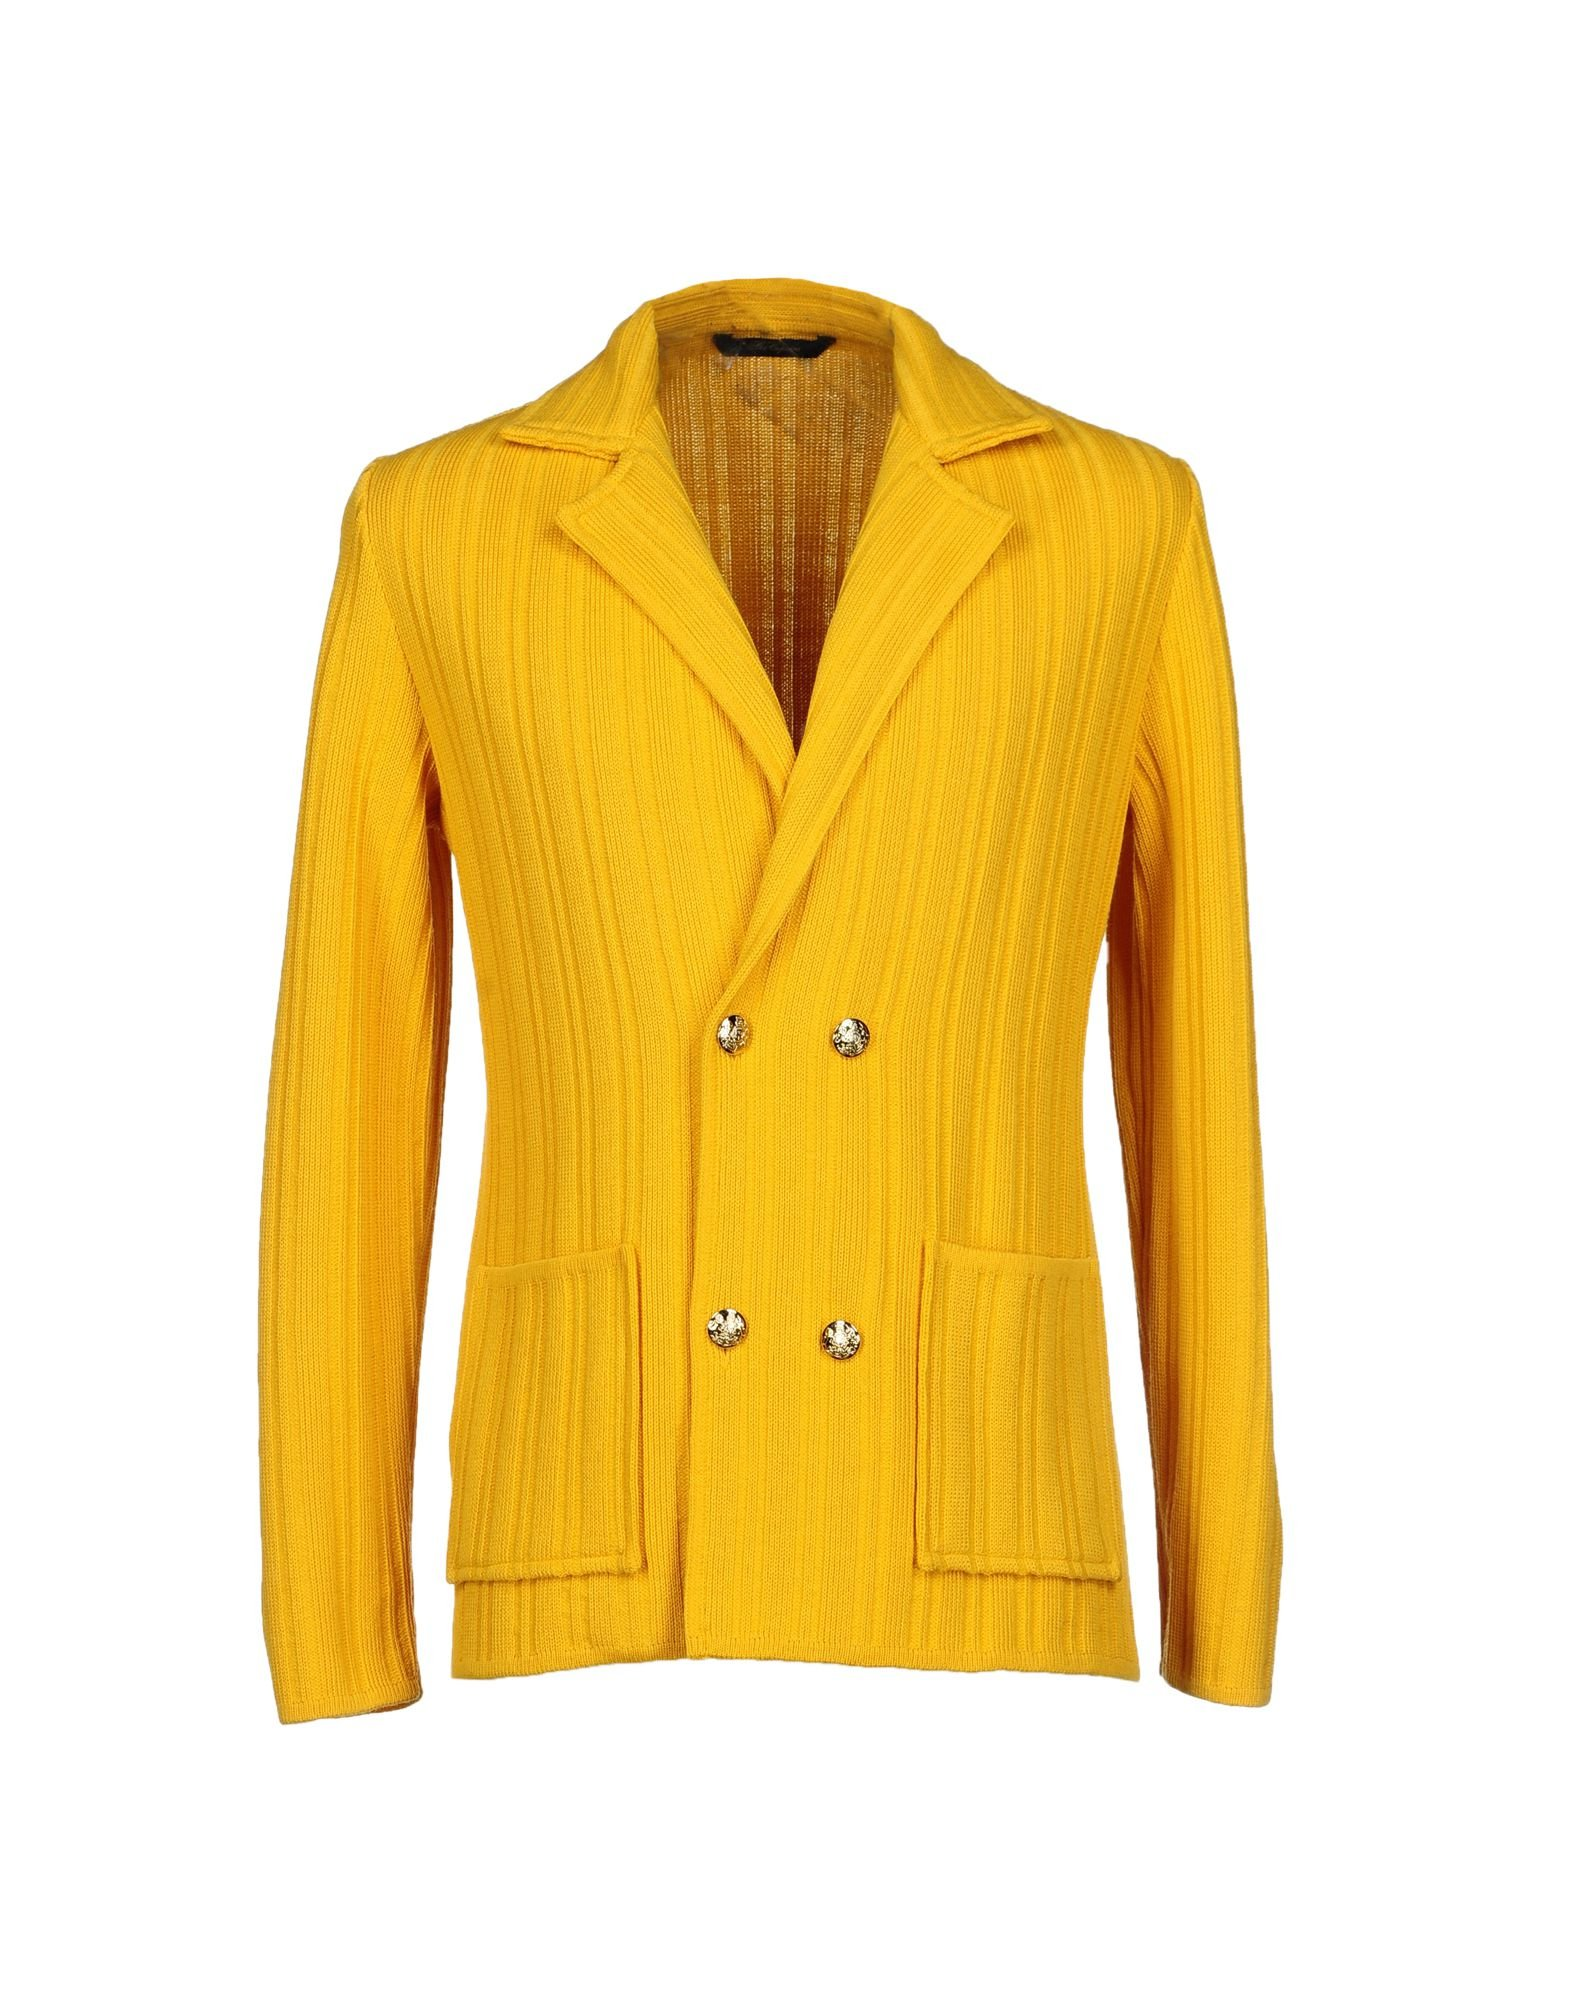 Find great deals on eBay for mens yellow cardigan. Shop with confidence.